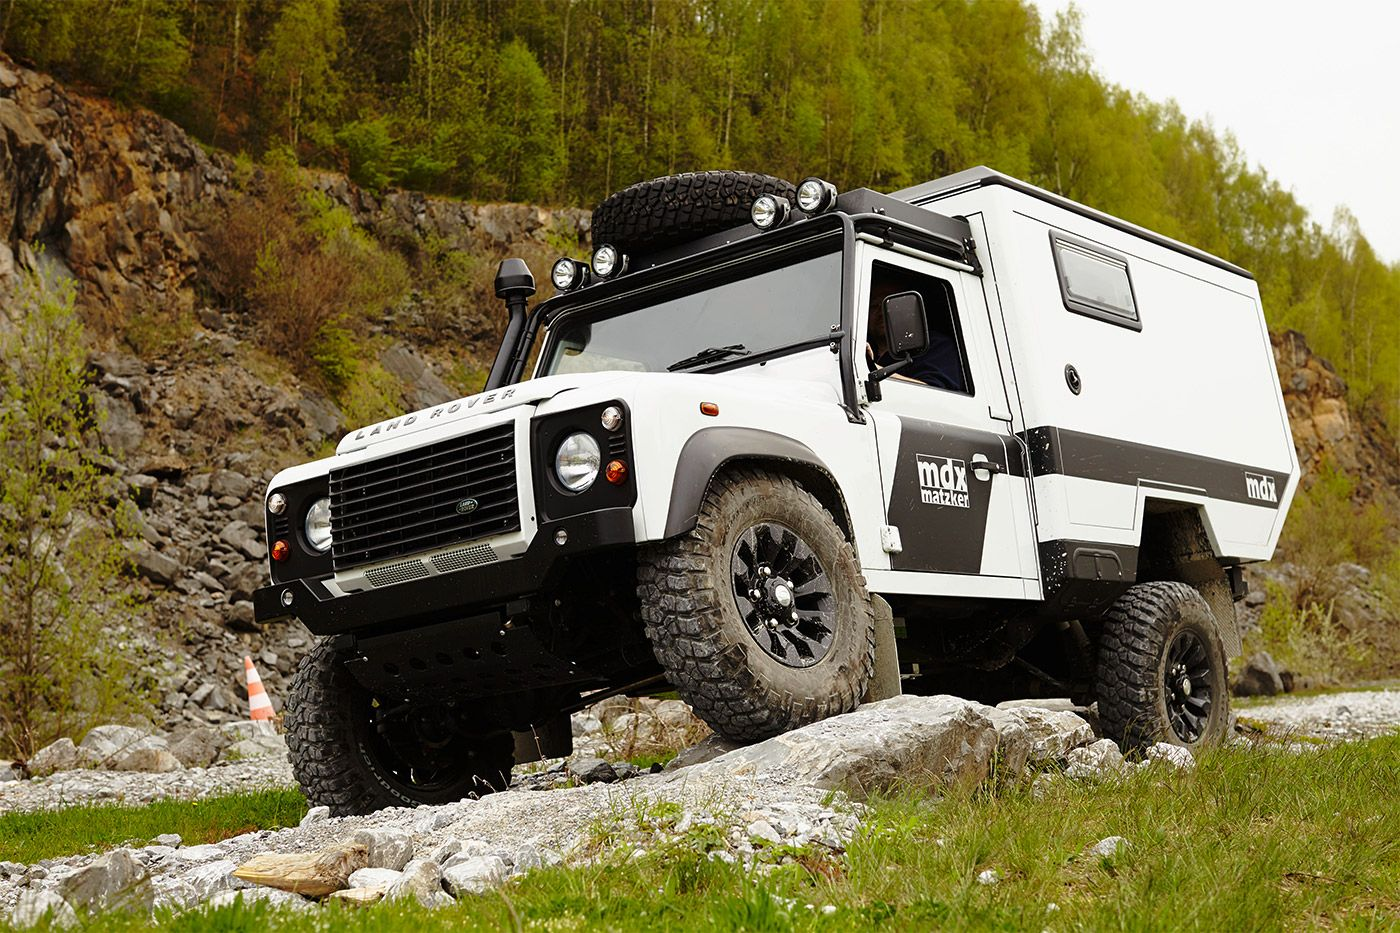 defender mdx das expeditionsfahrzeug reisemobil off road. Black Bedroom Furniture Sets. Home Design Ideas